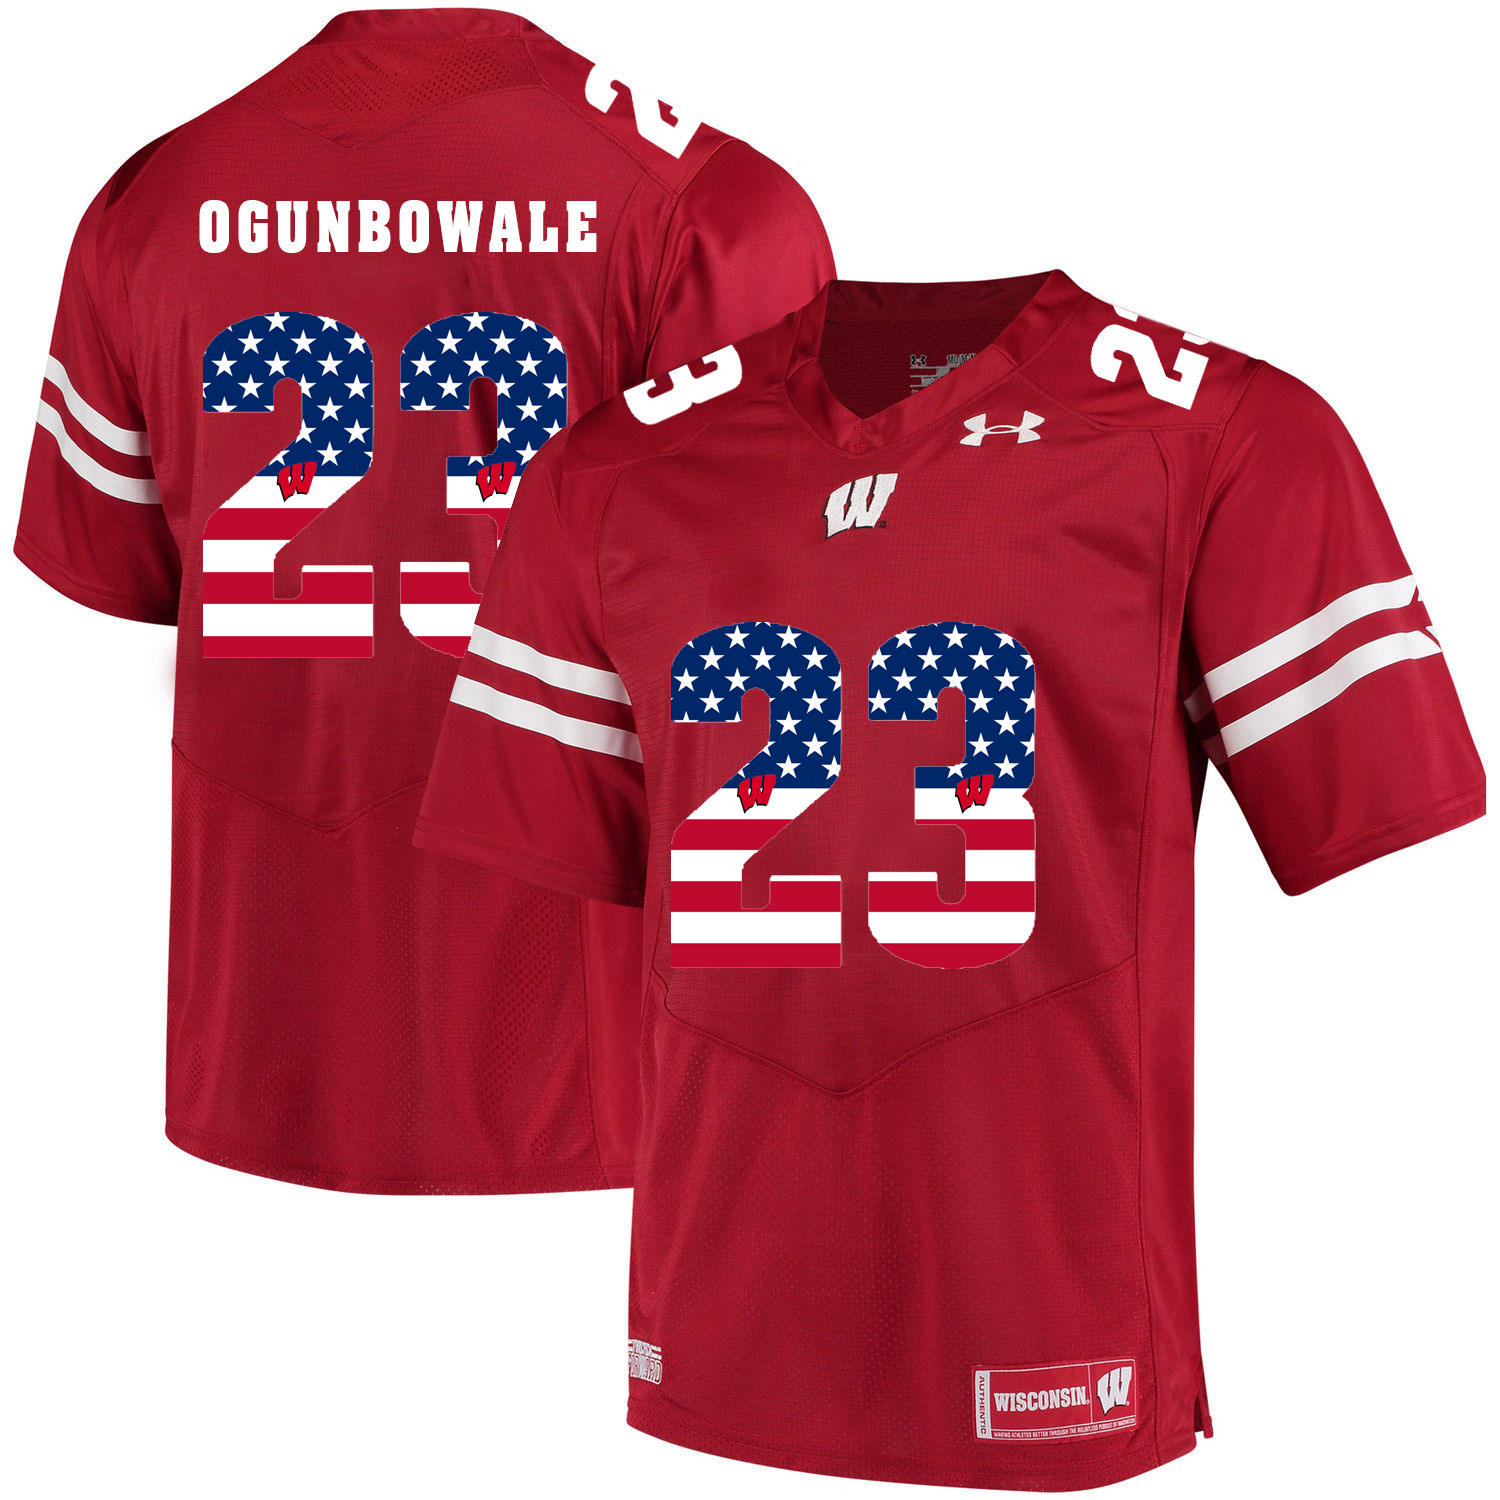 Wisconsin Badgers 23 Dare Ogunbowale Red USA Flag College Football Jersey